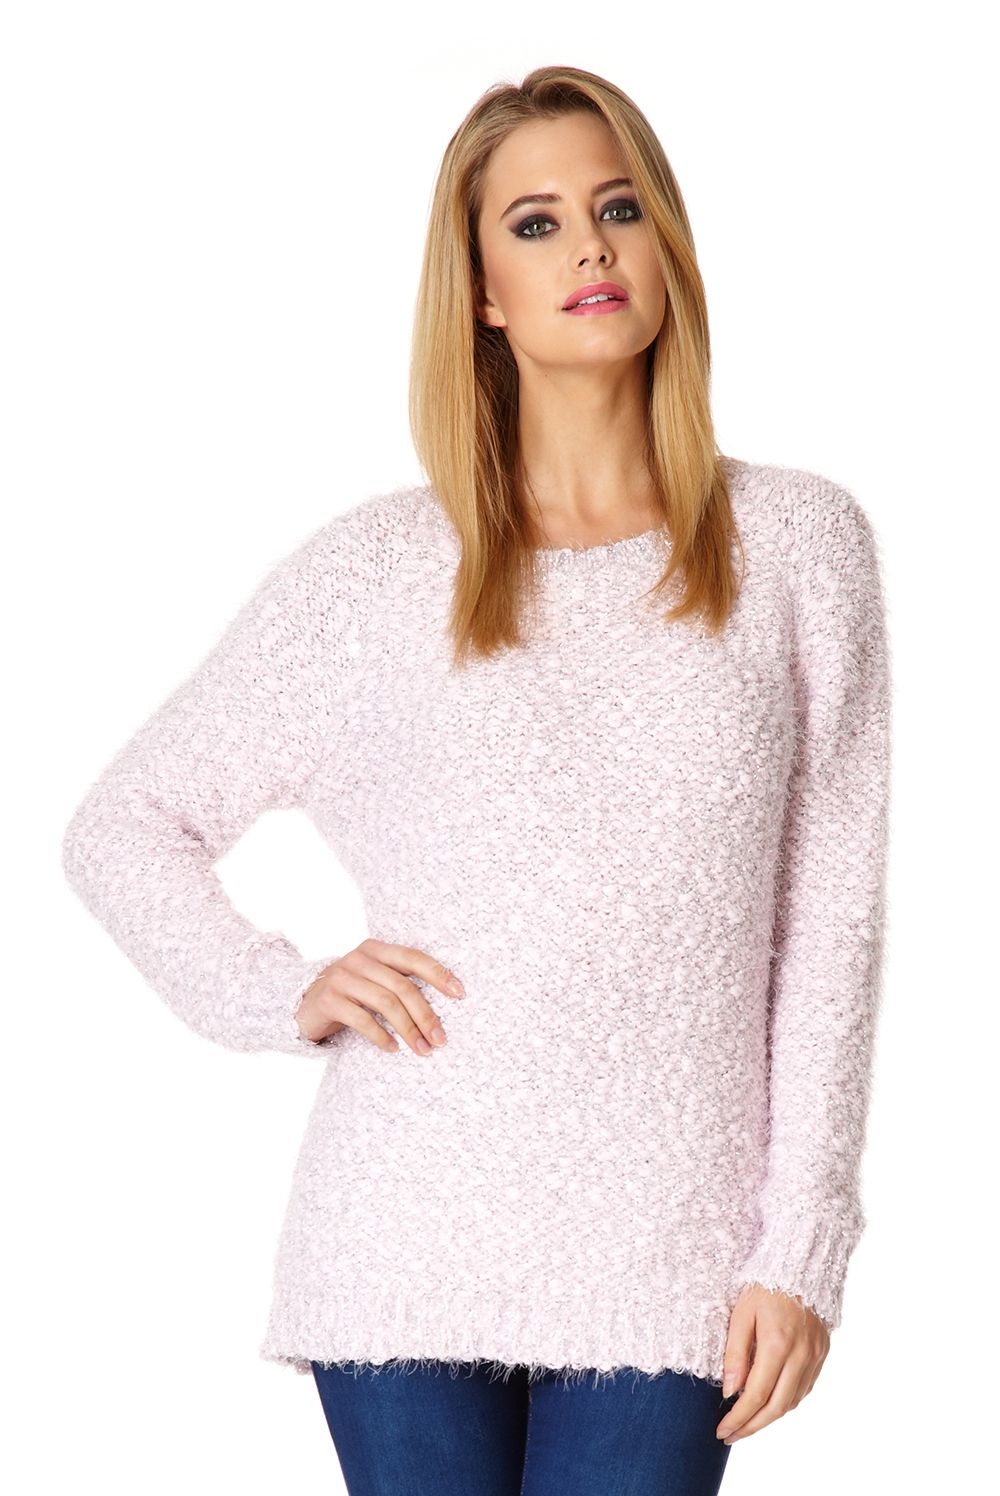 Knitting Trivia Questions : Lyst quiz popcorn knit jumper